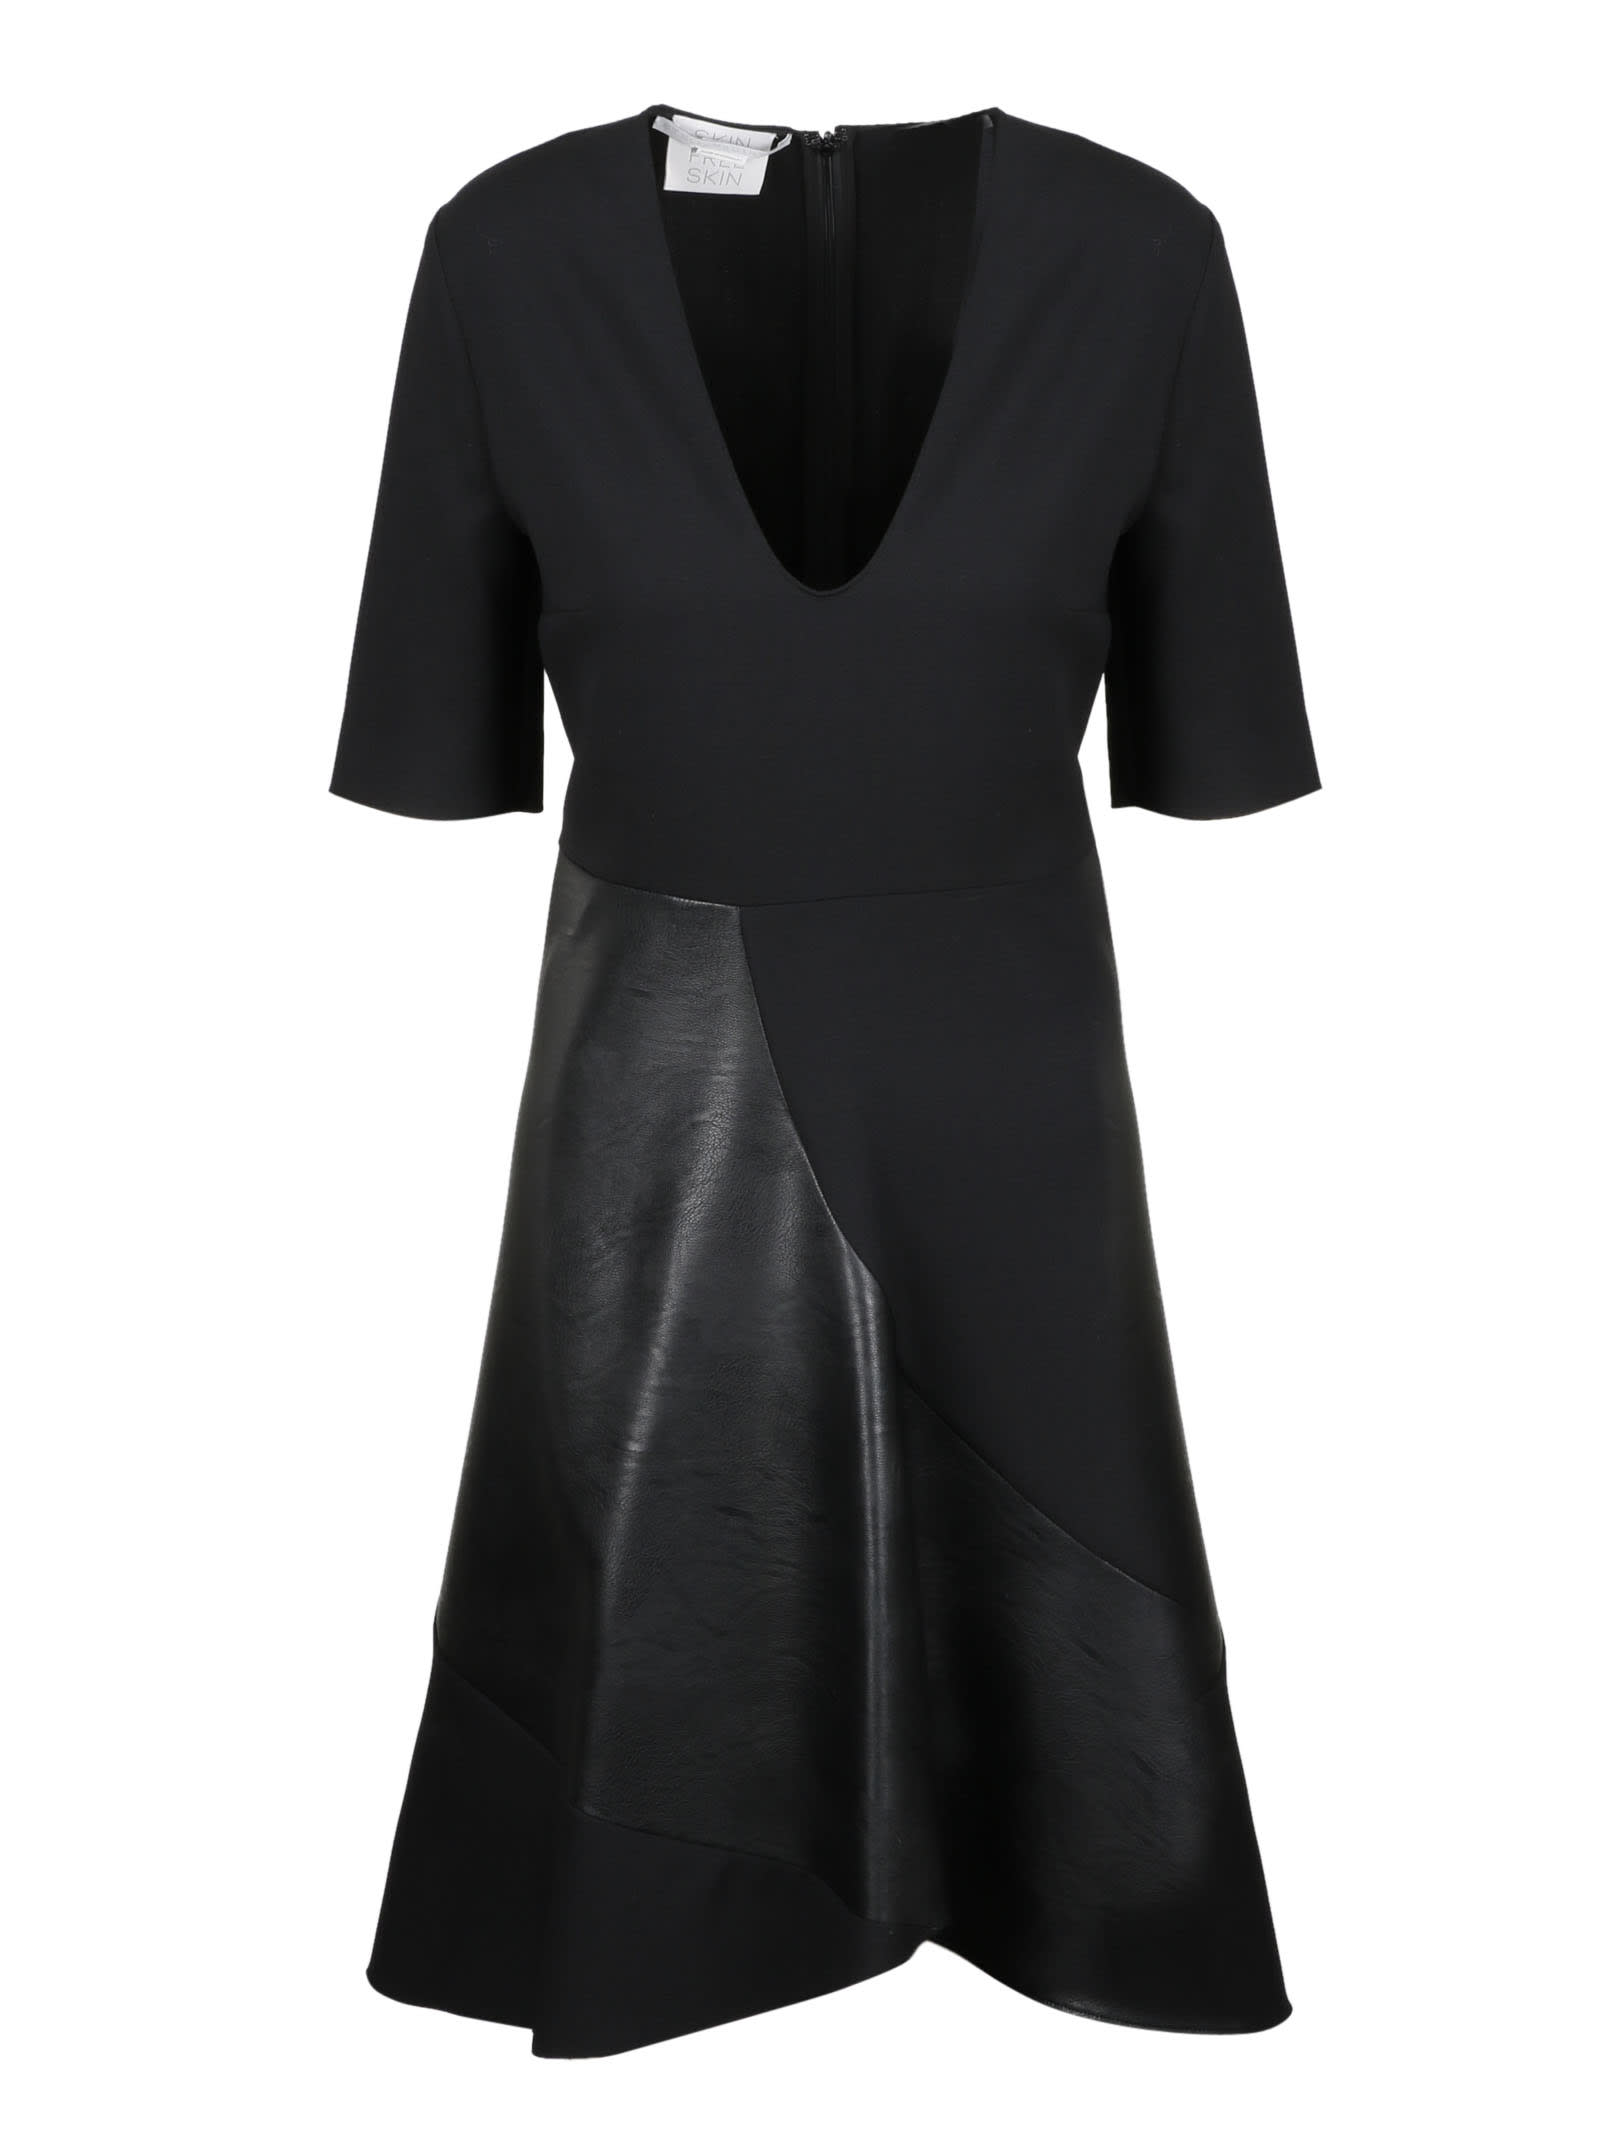 Stella McCartney Astrid Dress